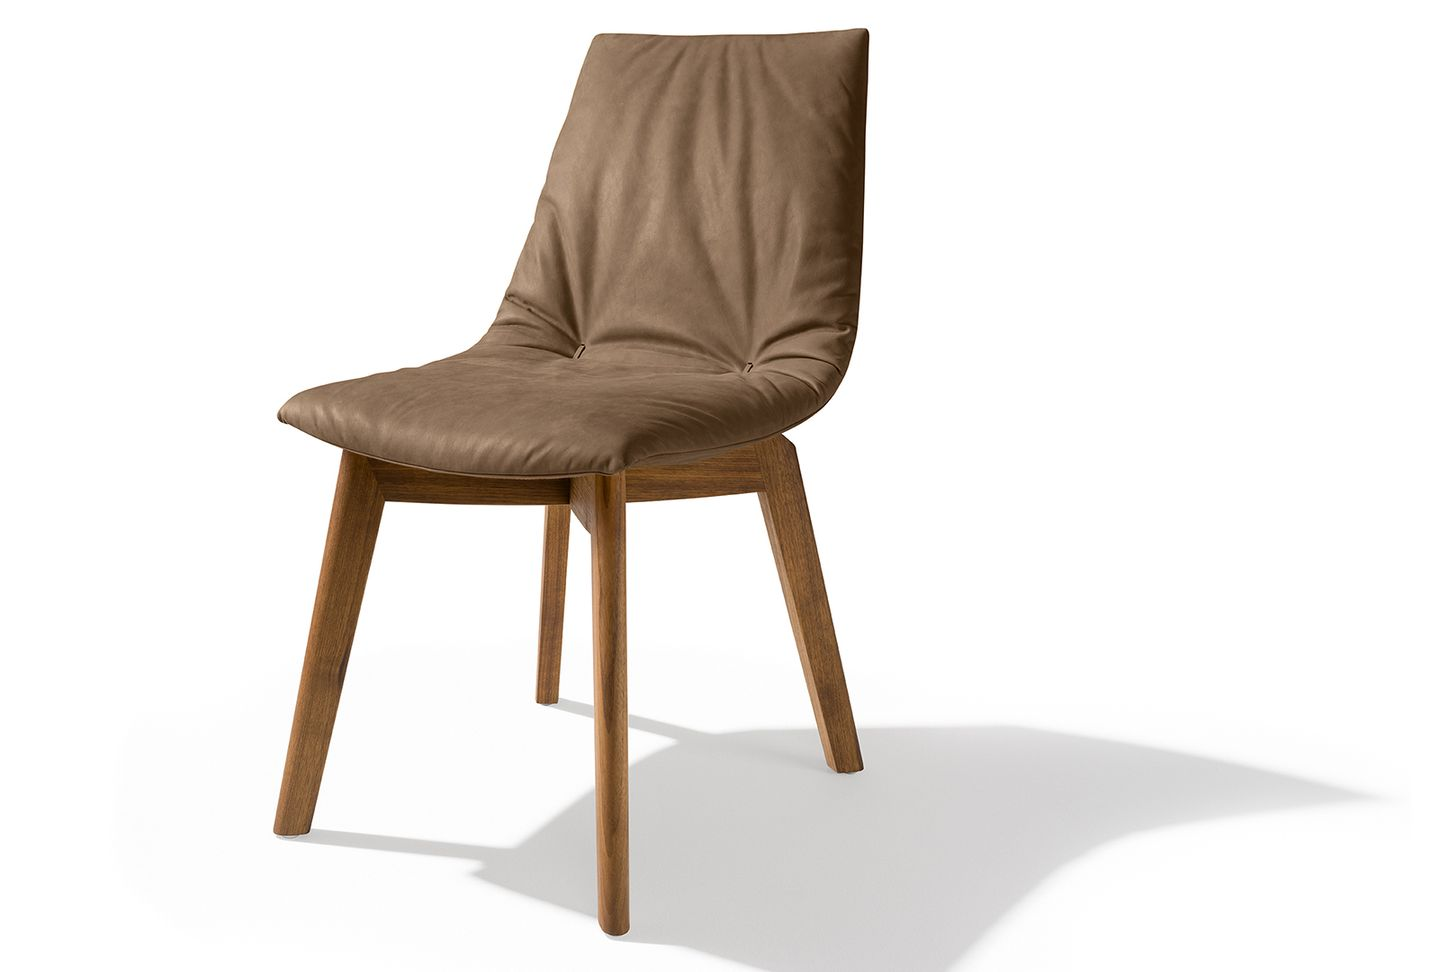 lui chair with walnut legs and leather tartuf